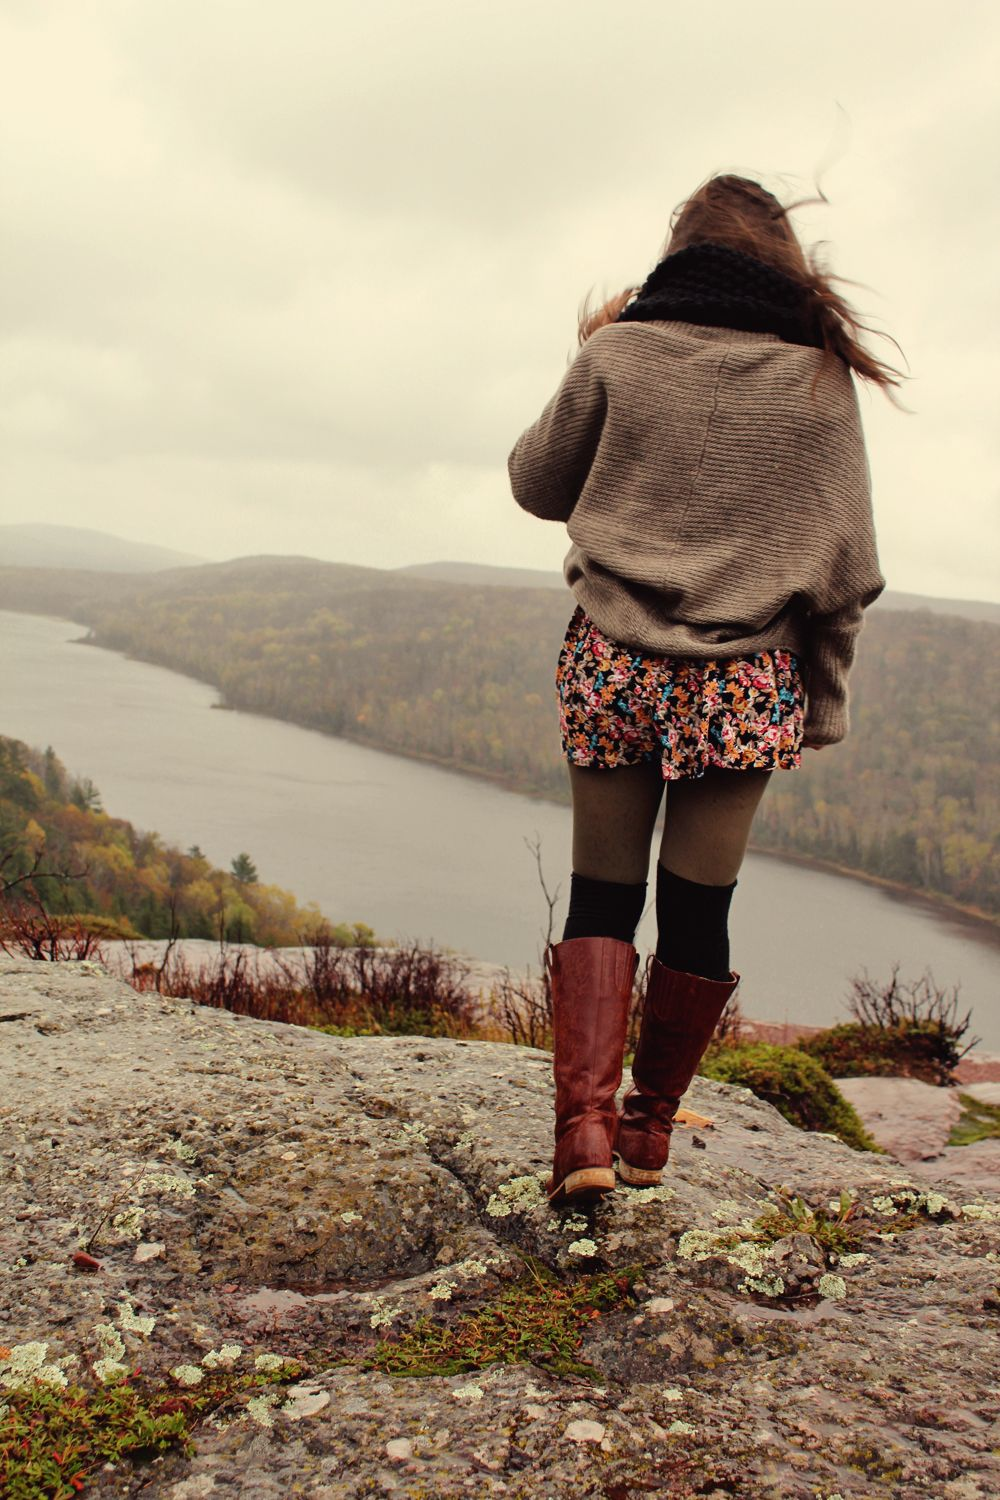 Cozy sweater floral dress riding boots kneehigh socks dps